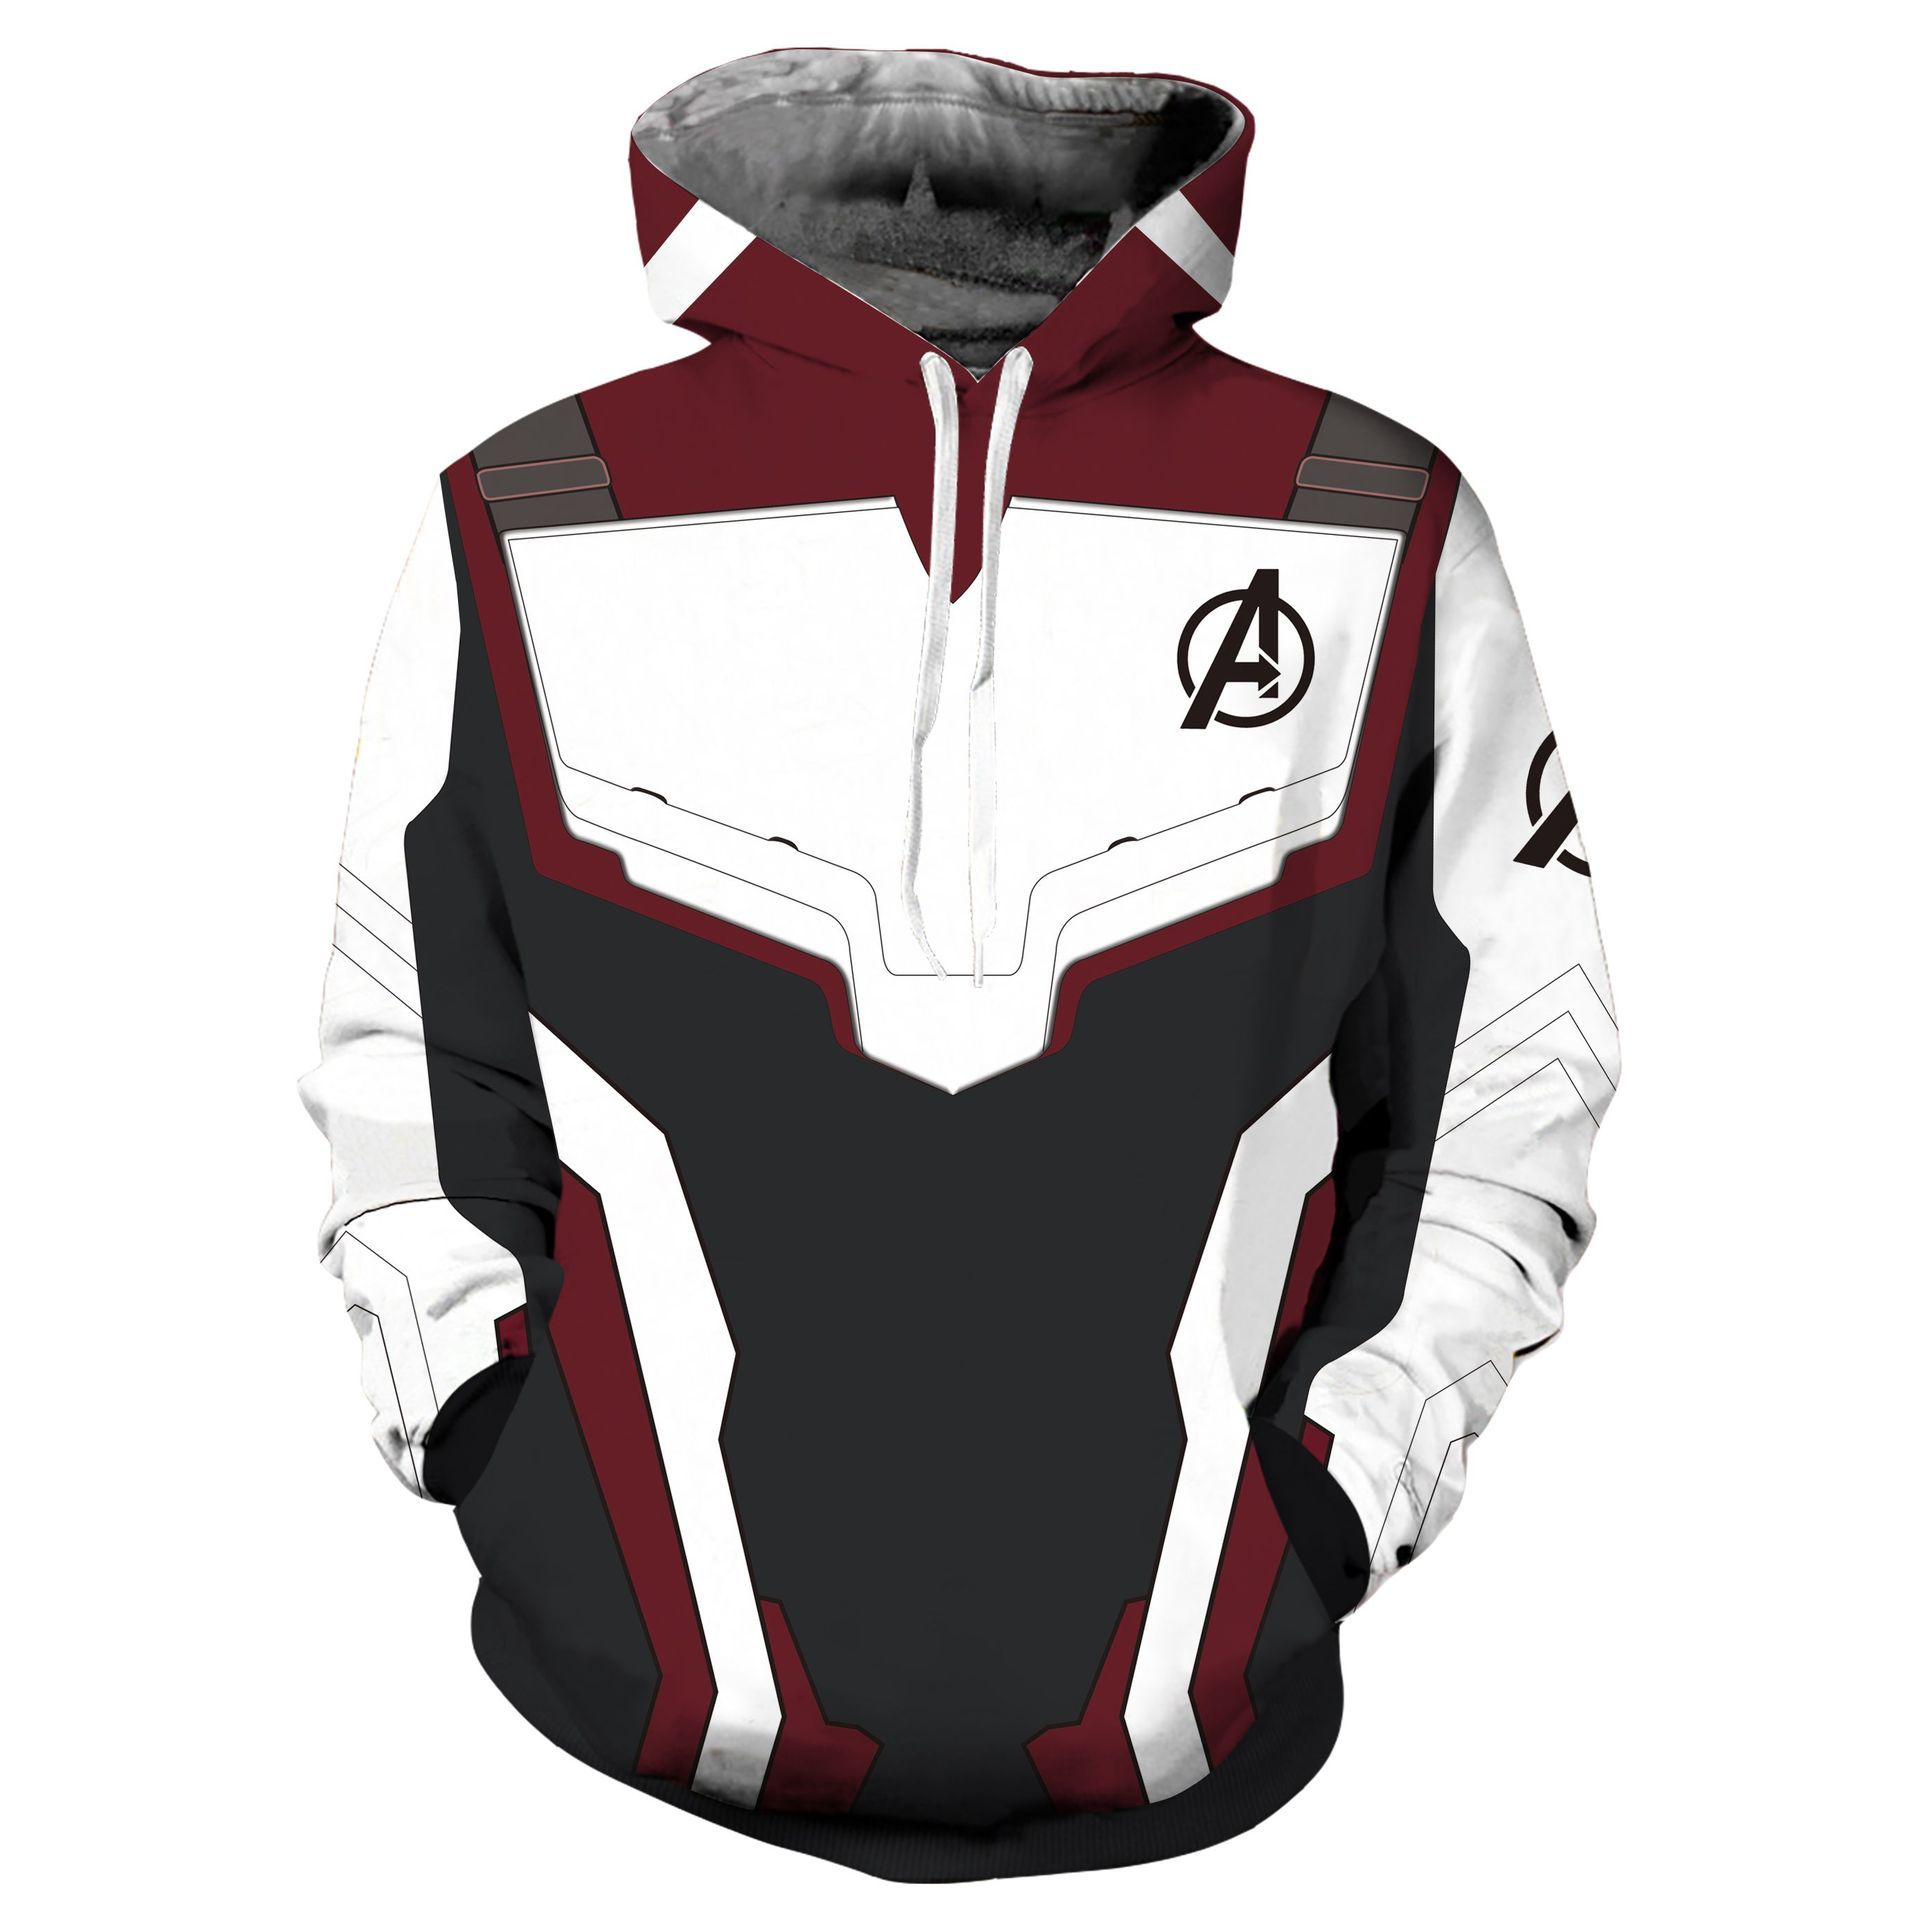 Avengers Endgame Quantum Realm 3D Printed Hoodie Sweatshirt Men Women Zipper Jacket Superhero Iron Man Cosplay Hooded Pullover